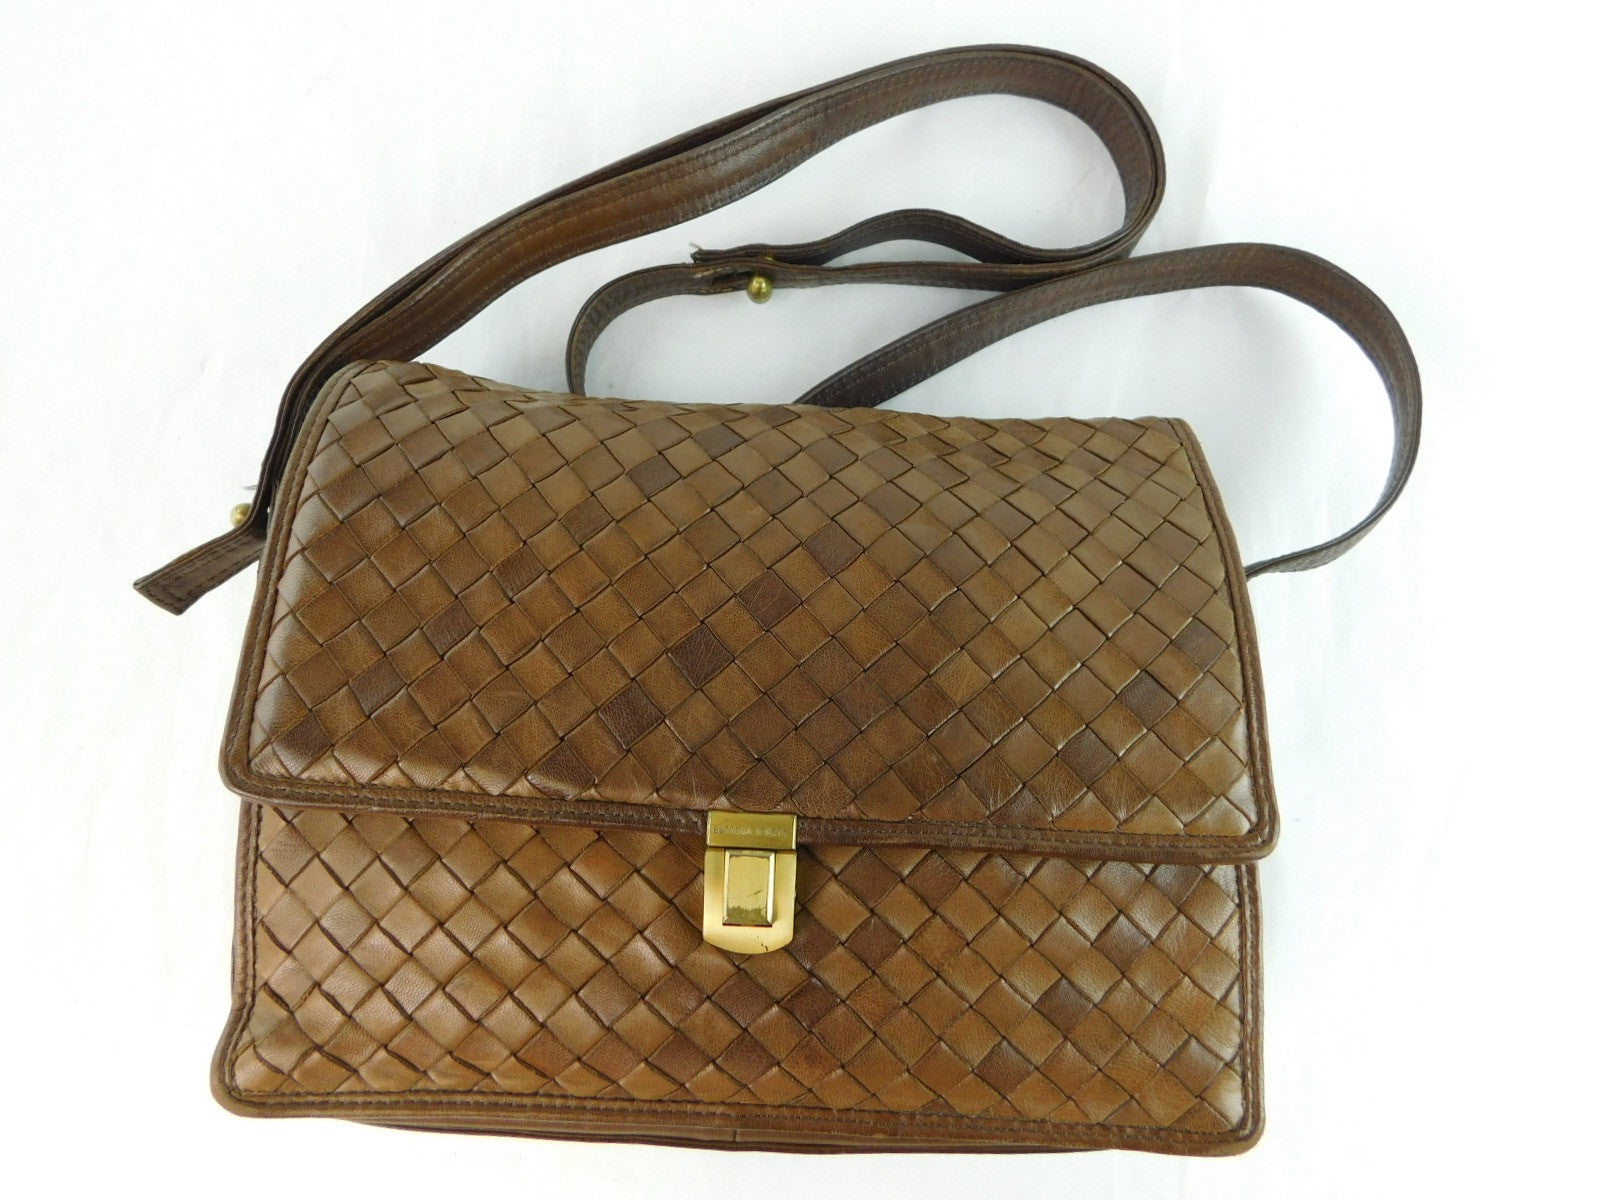 Bottega Veneta Woven Leather Brown Shoulder Bag